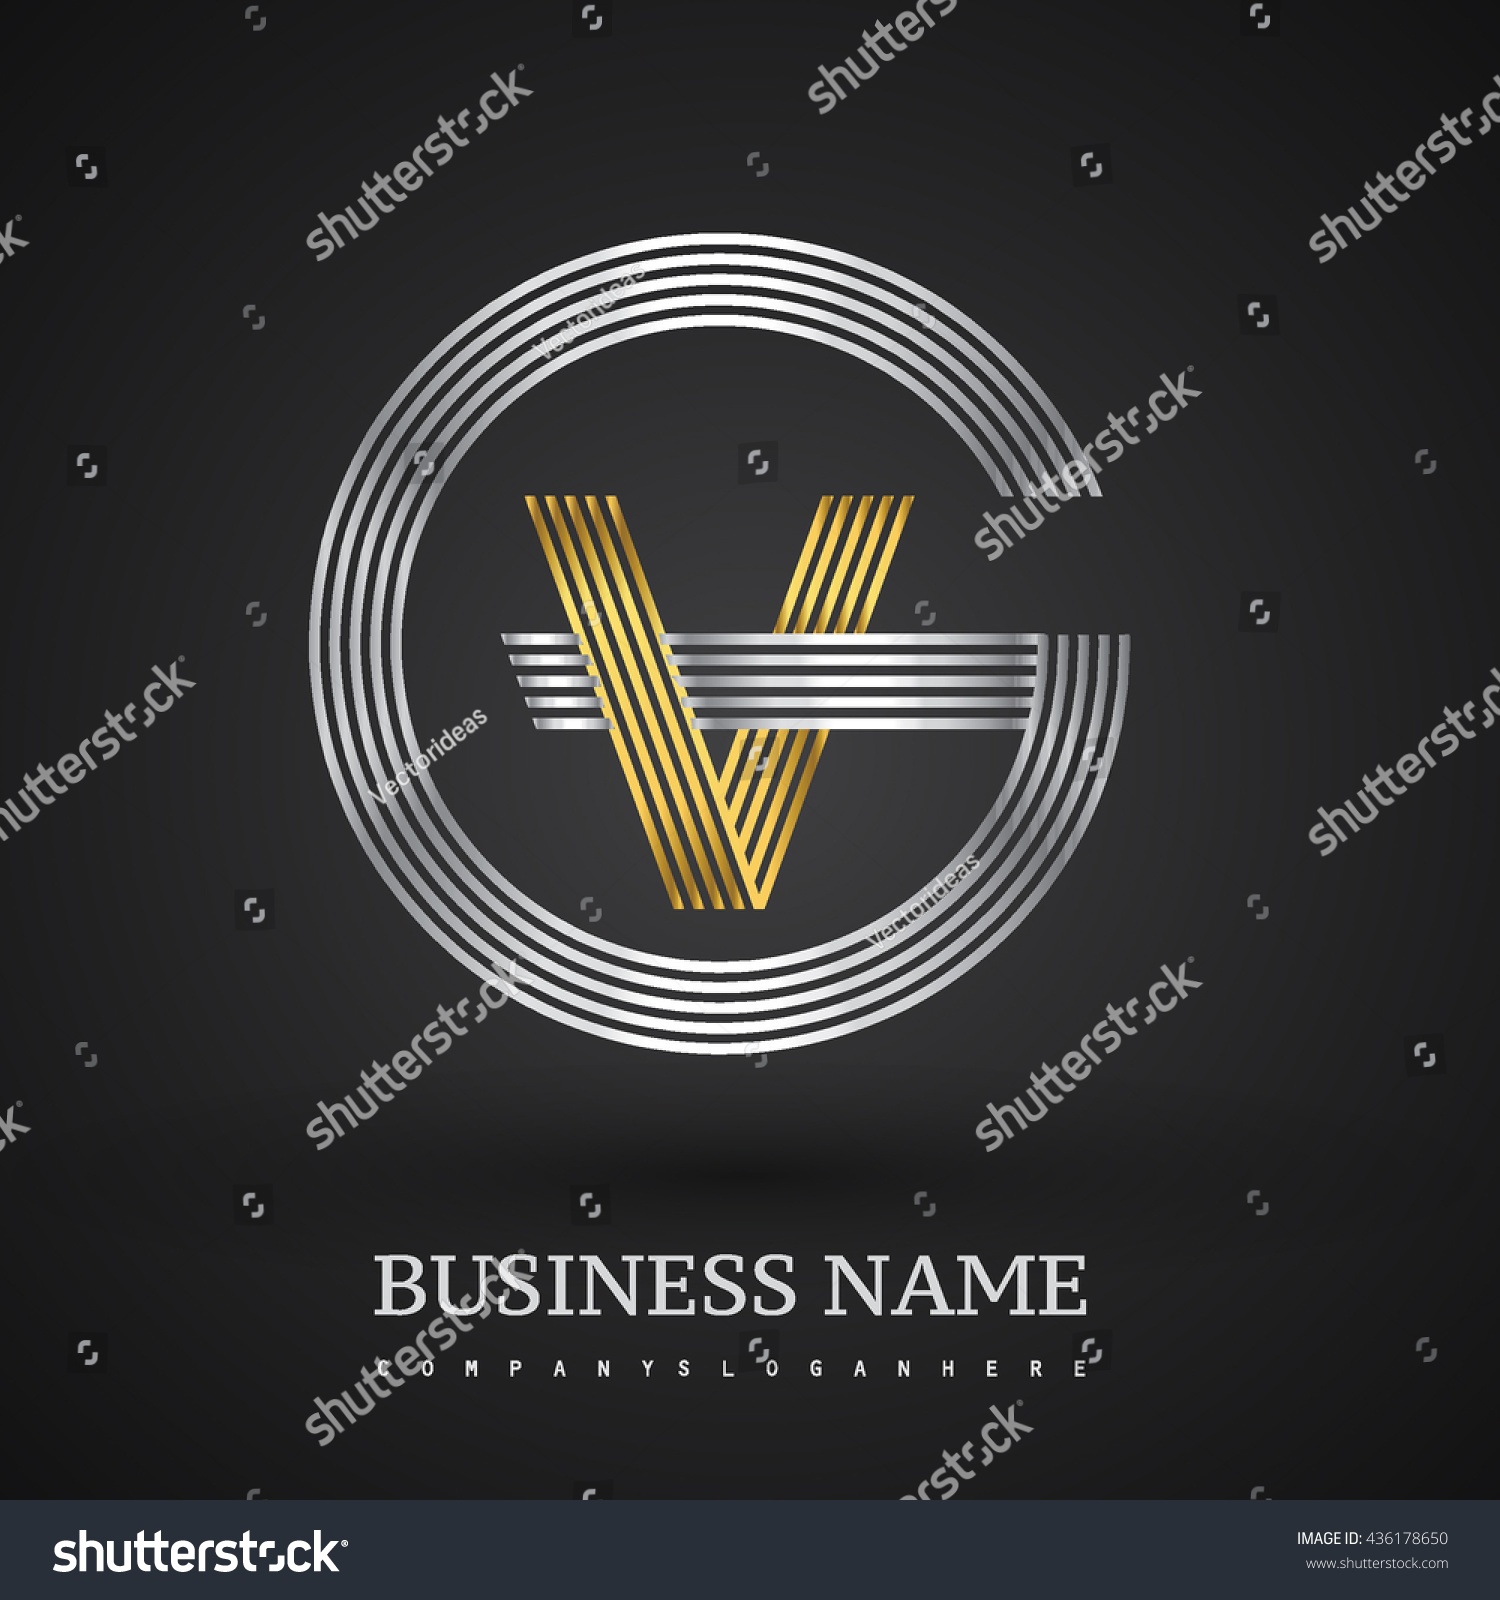 Letter gv vg linked logo design stock vector 436178650 shutterstock letter gv or vg linked logo design circle g shape elegant silver and gold colored buycottarizona Image collections